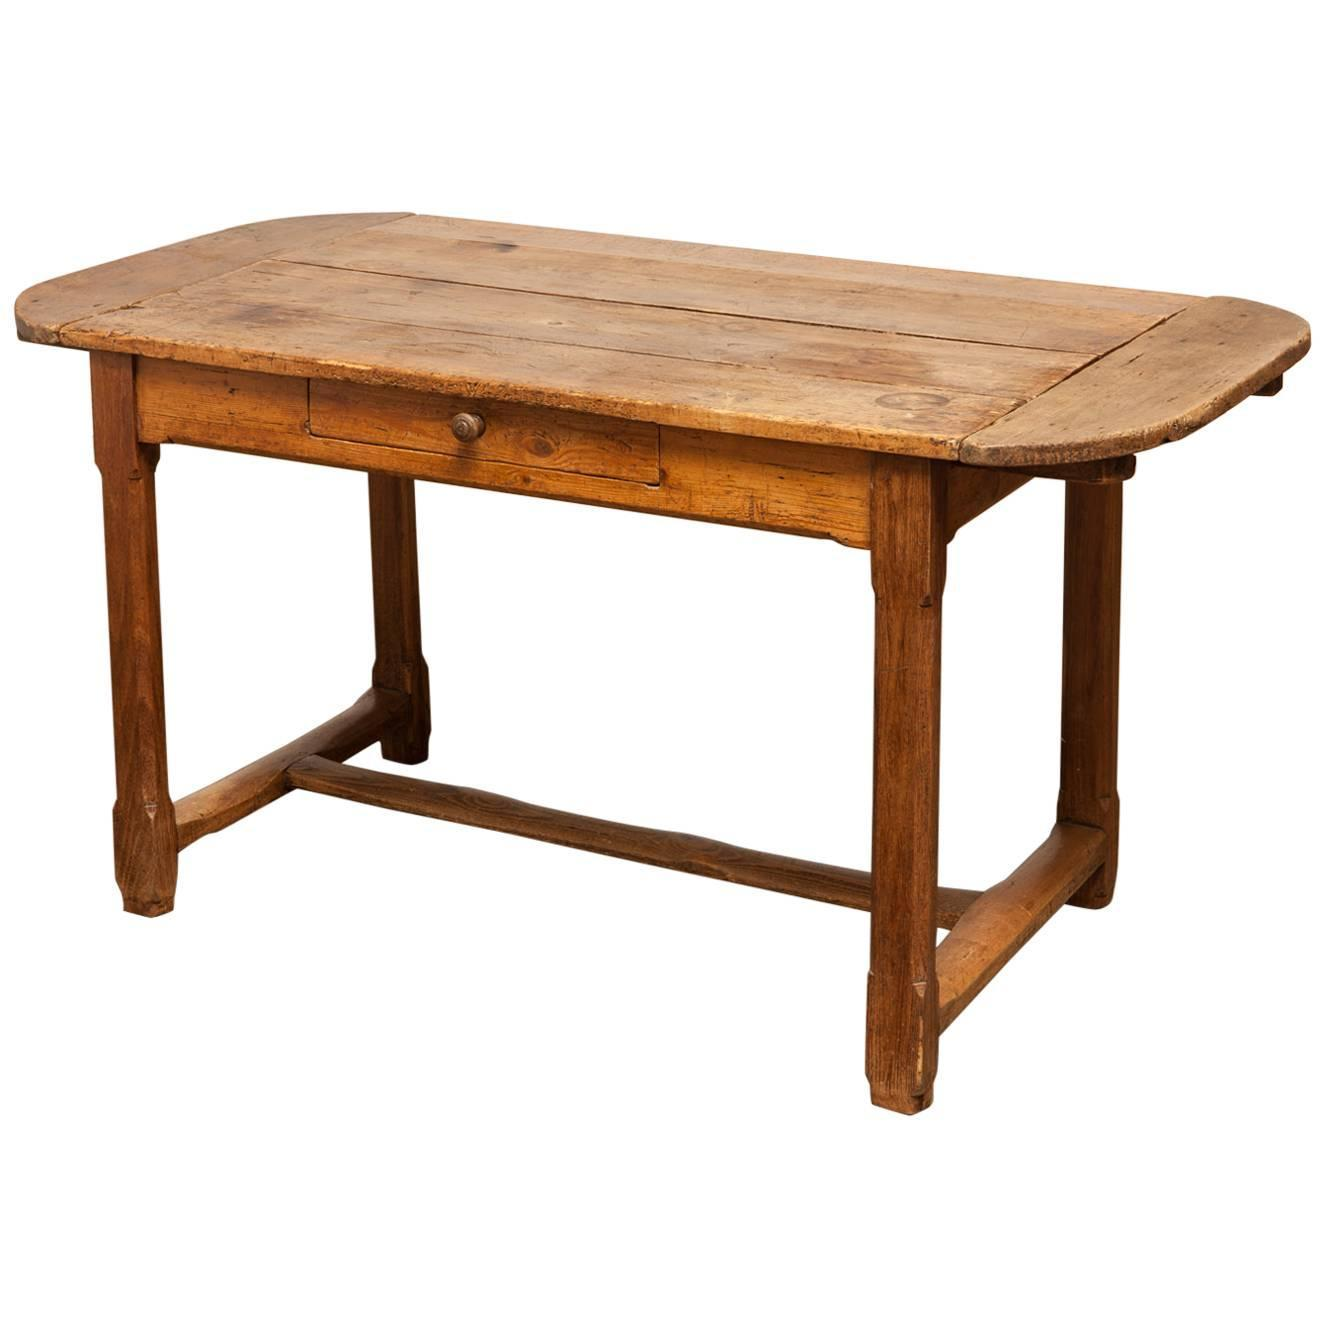 19th Century French Farmhouse Kitchen Table with Leaves at 1stdibs